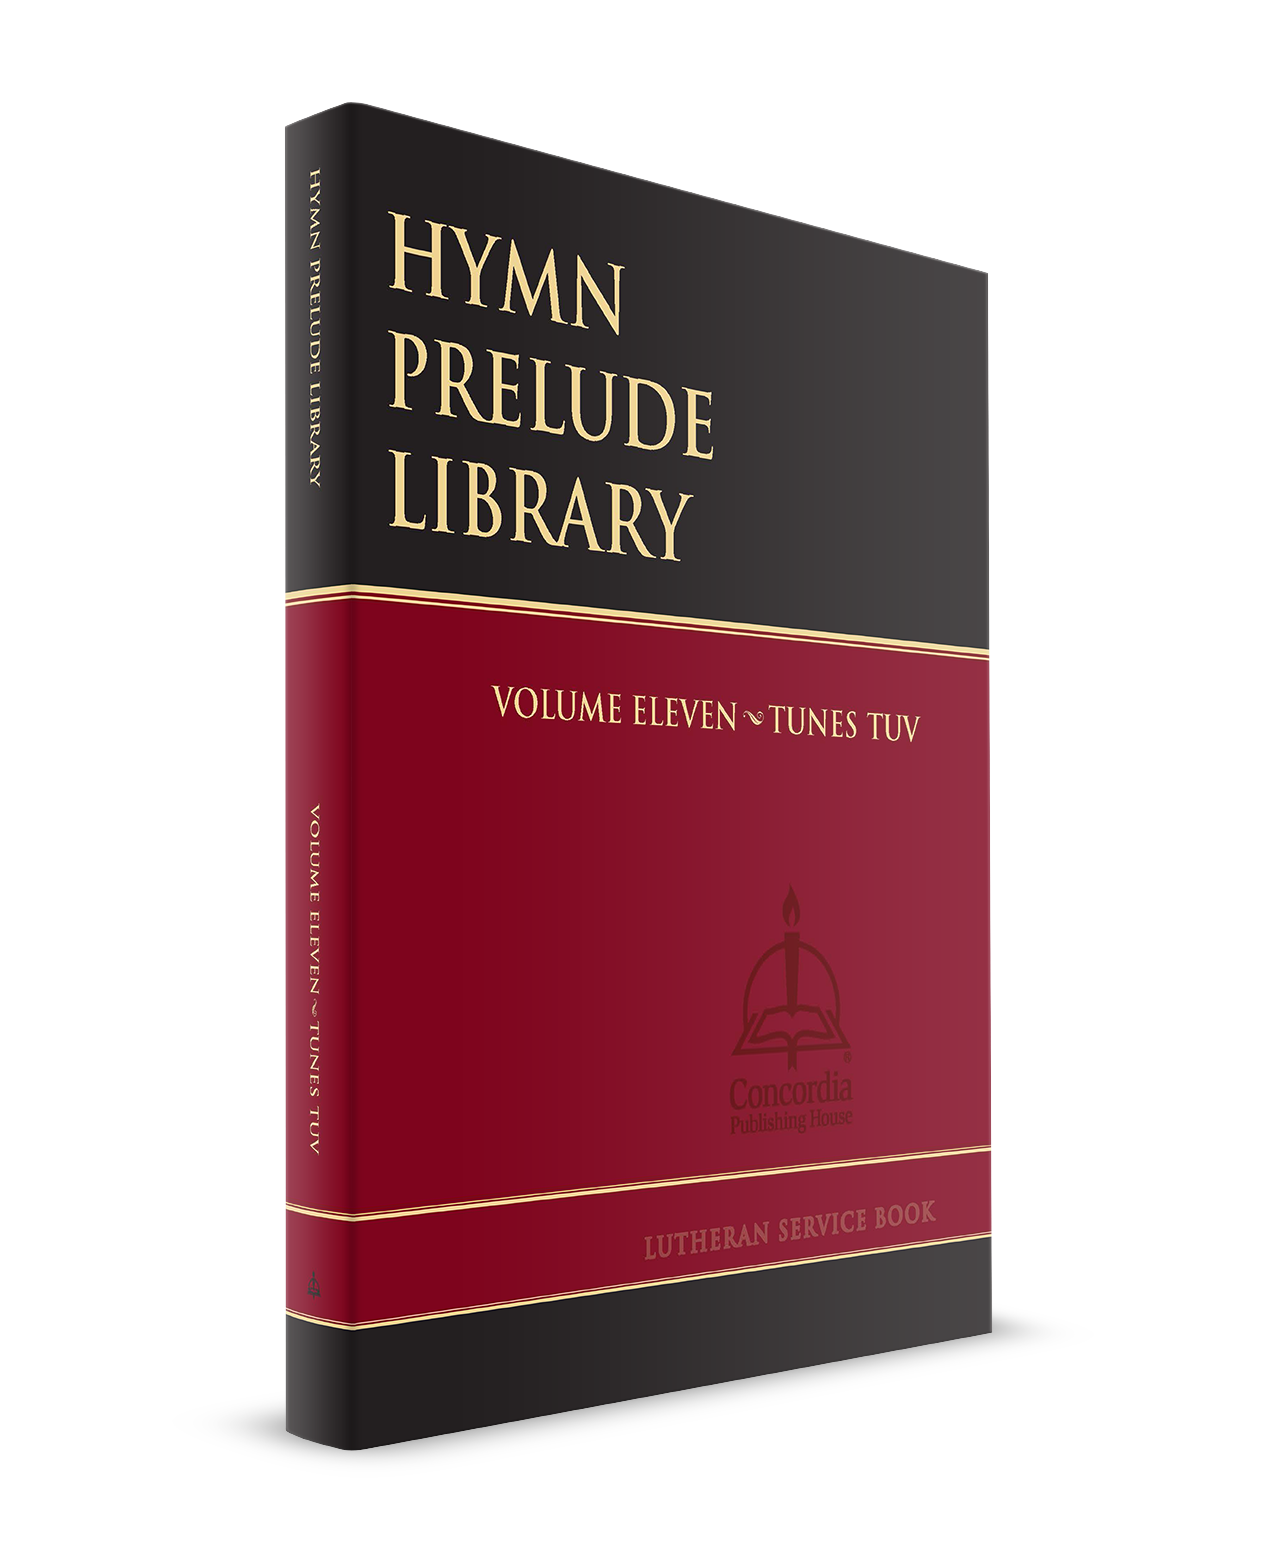 Hymn Prelude Library